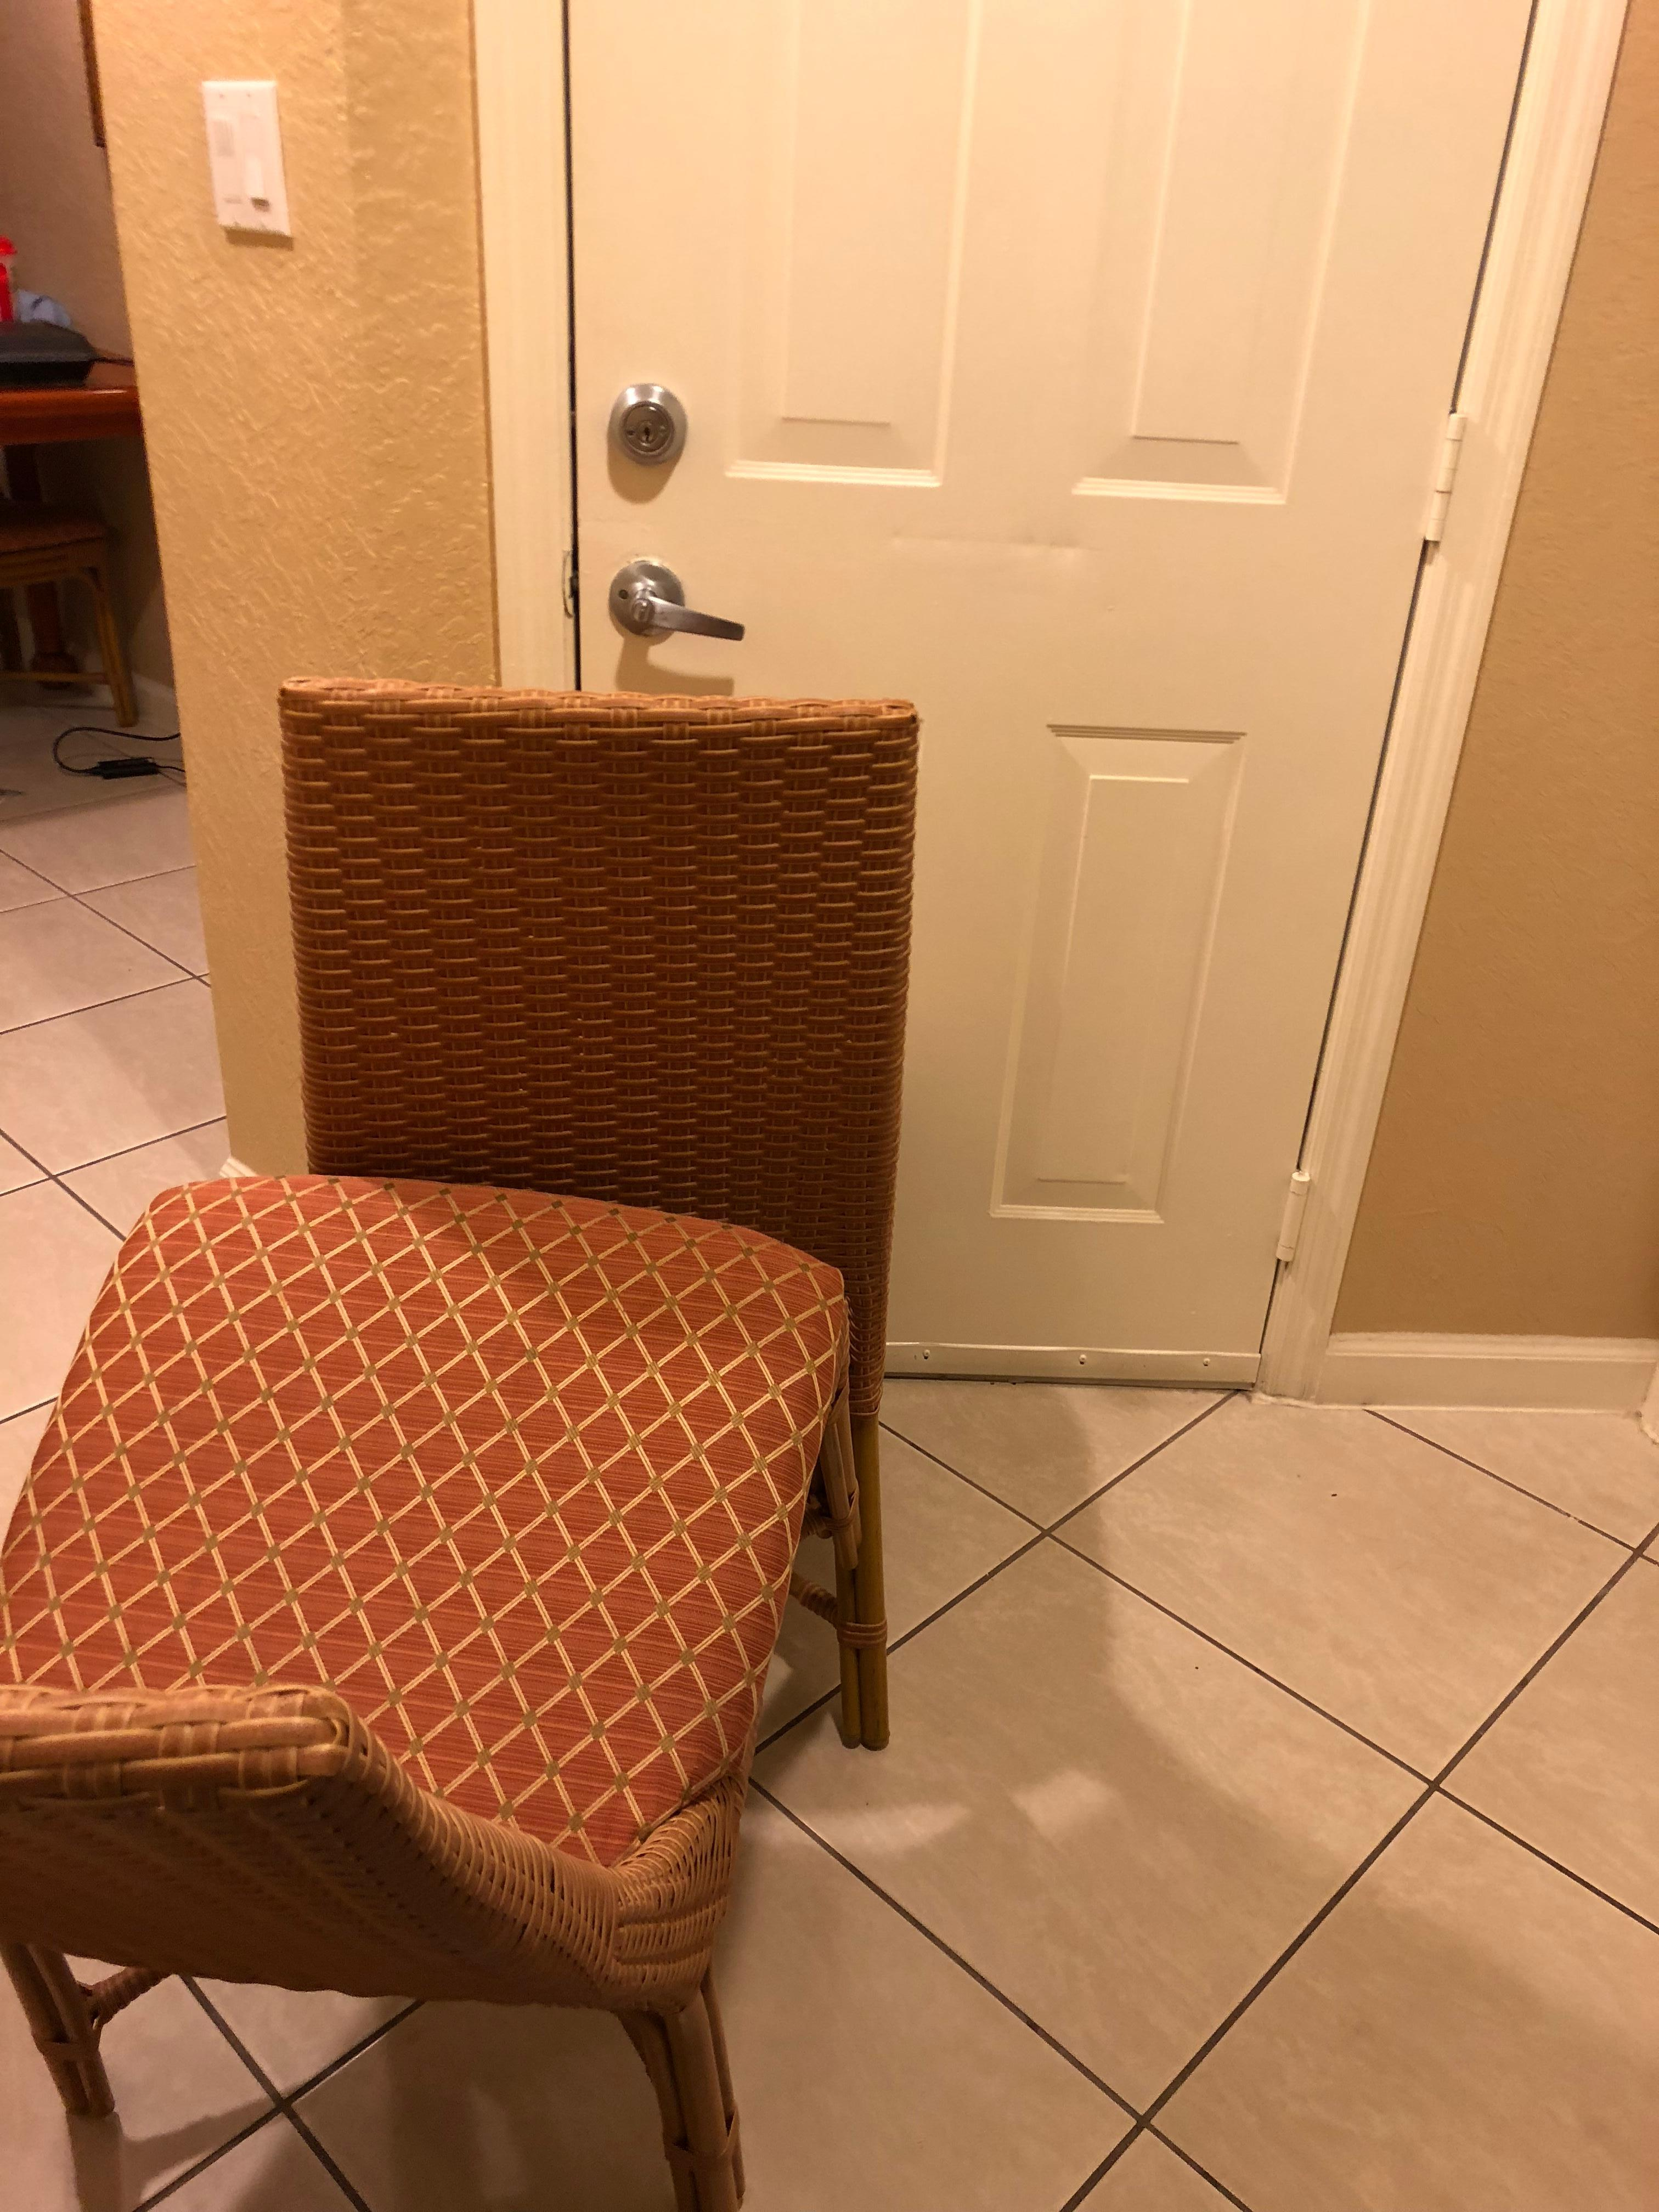 Had to use chairs to keep the neighbors from being able to access room